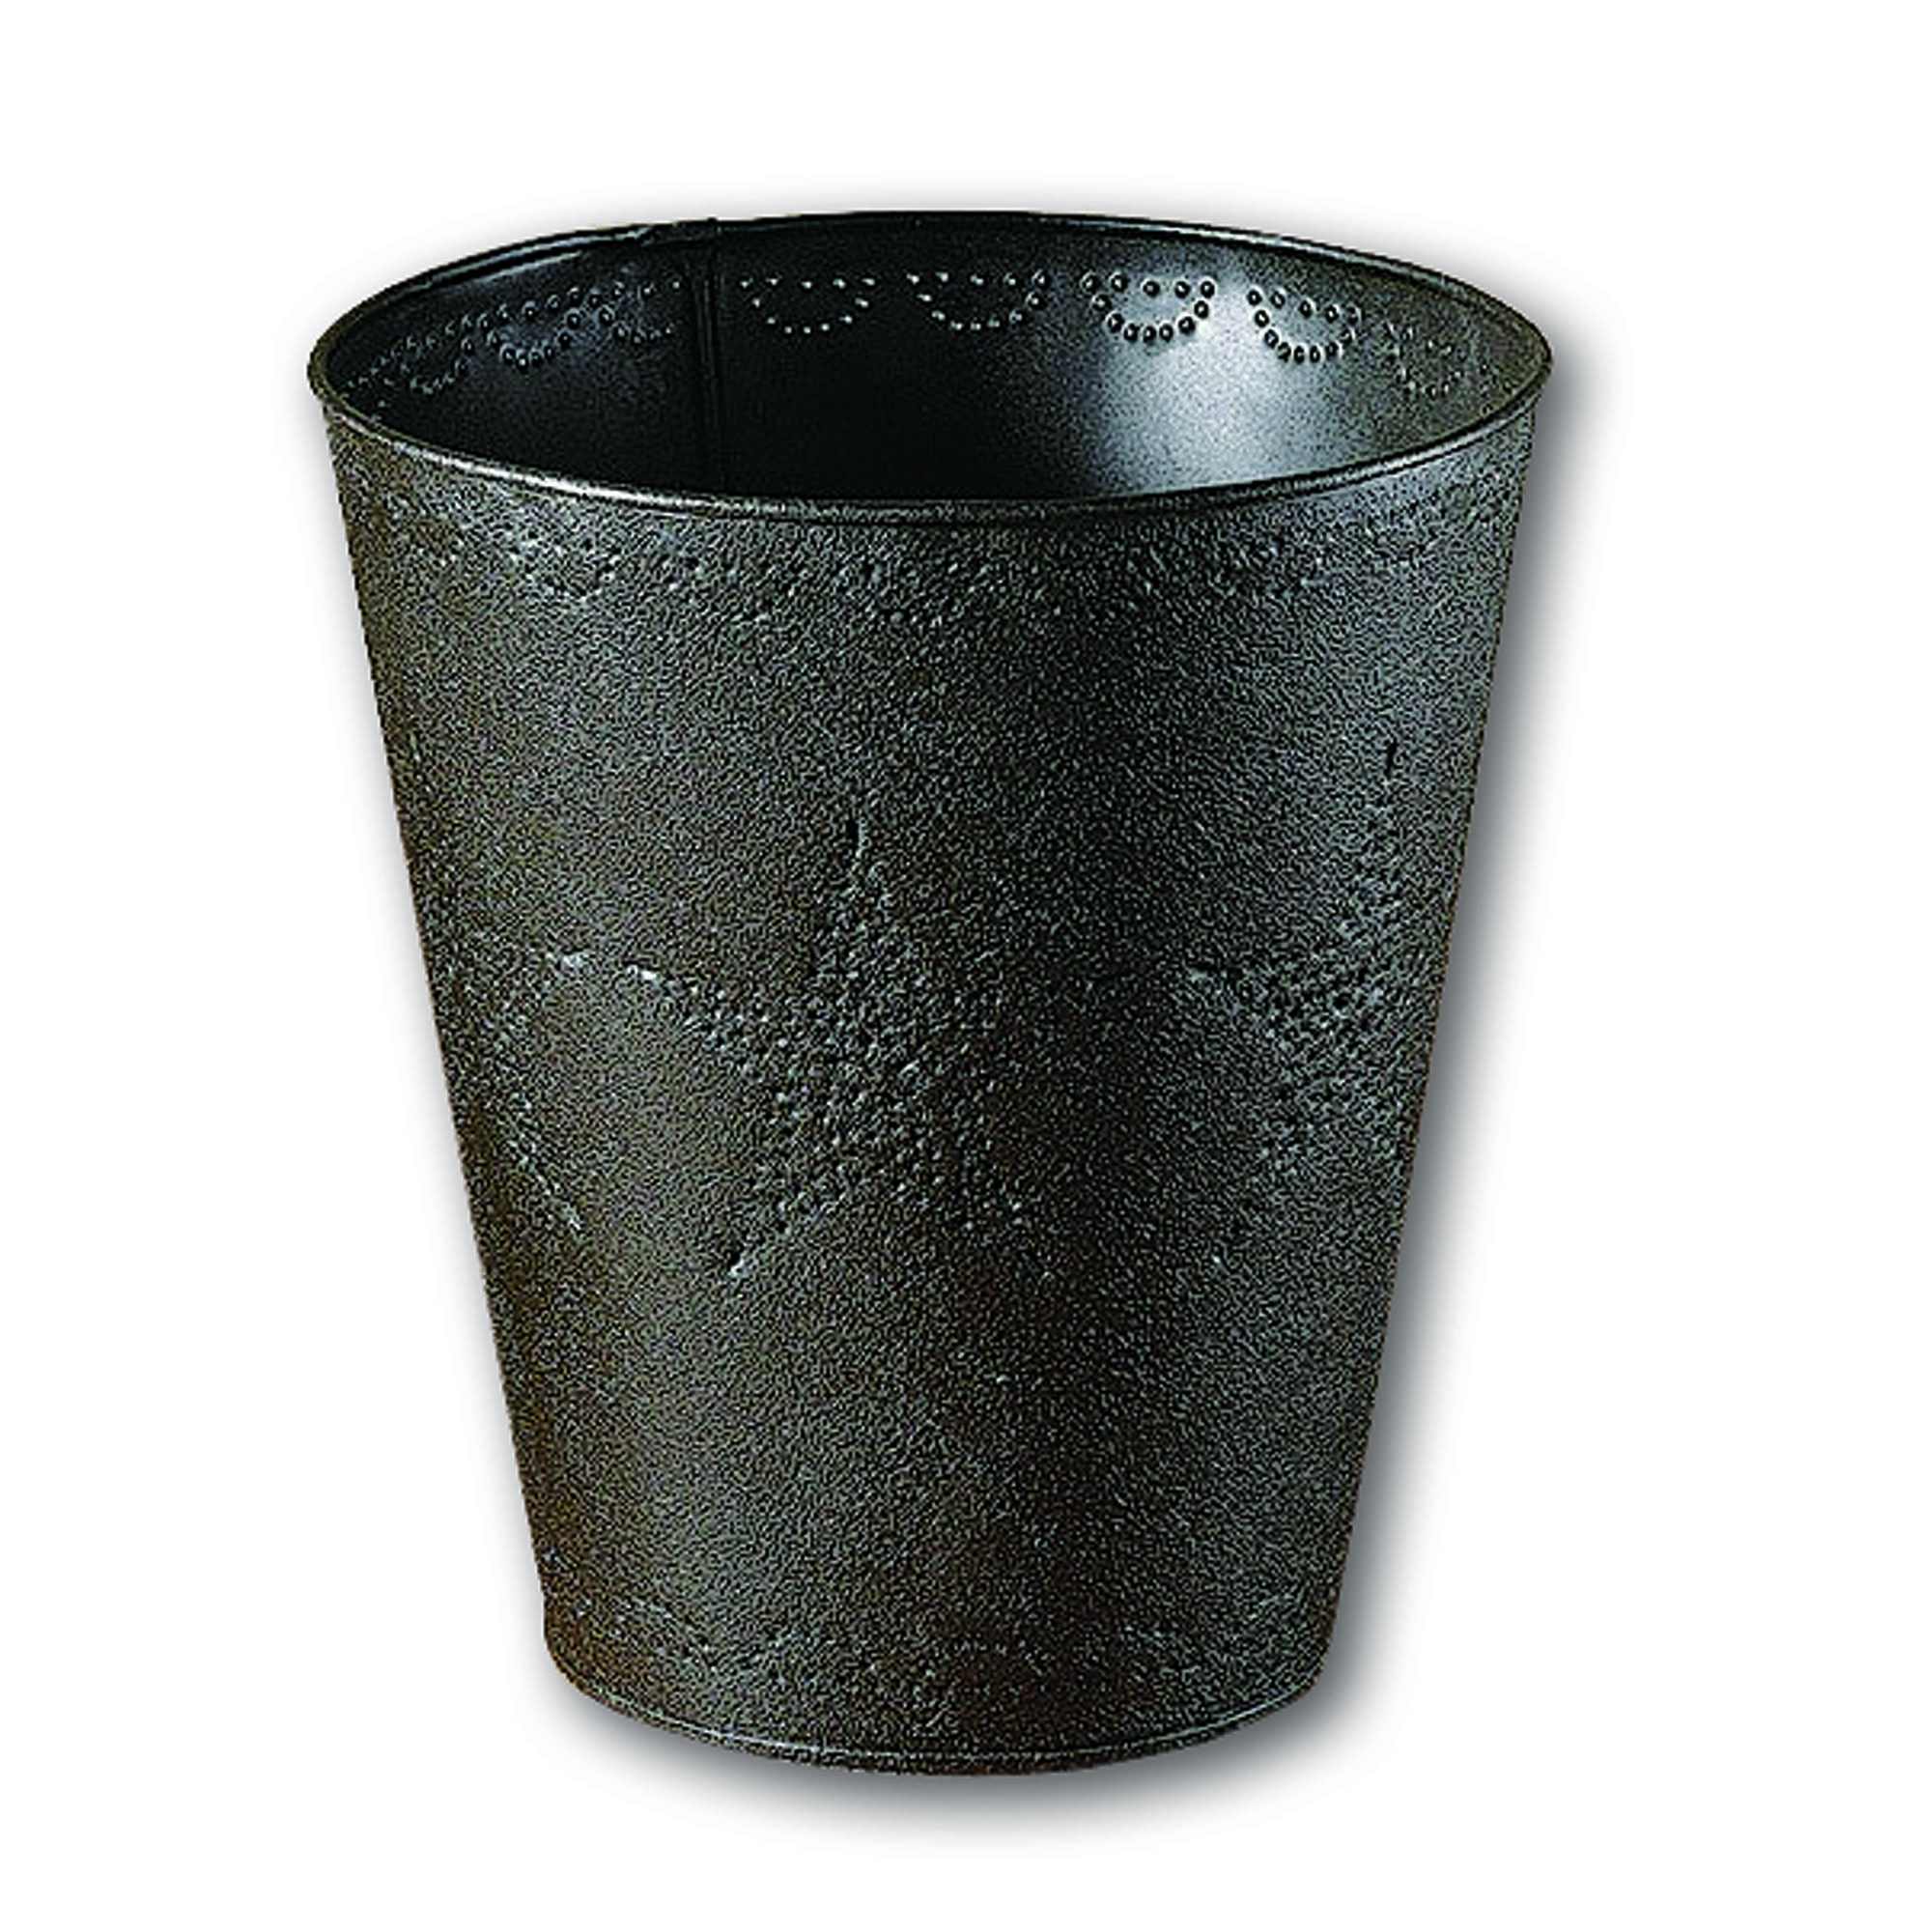 star-pattern punched tin wastebasket